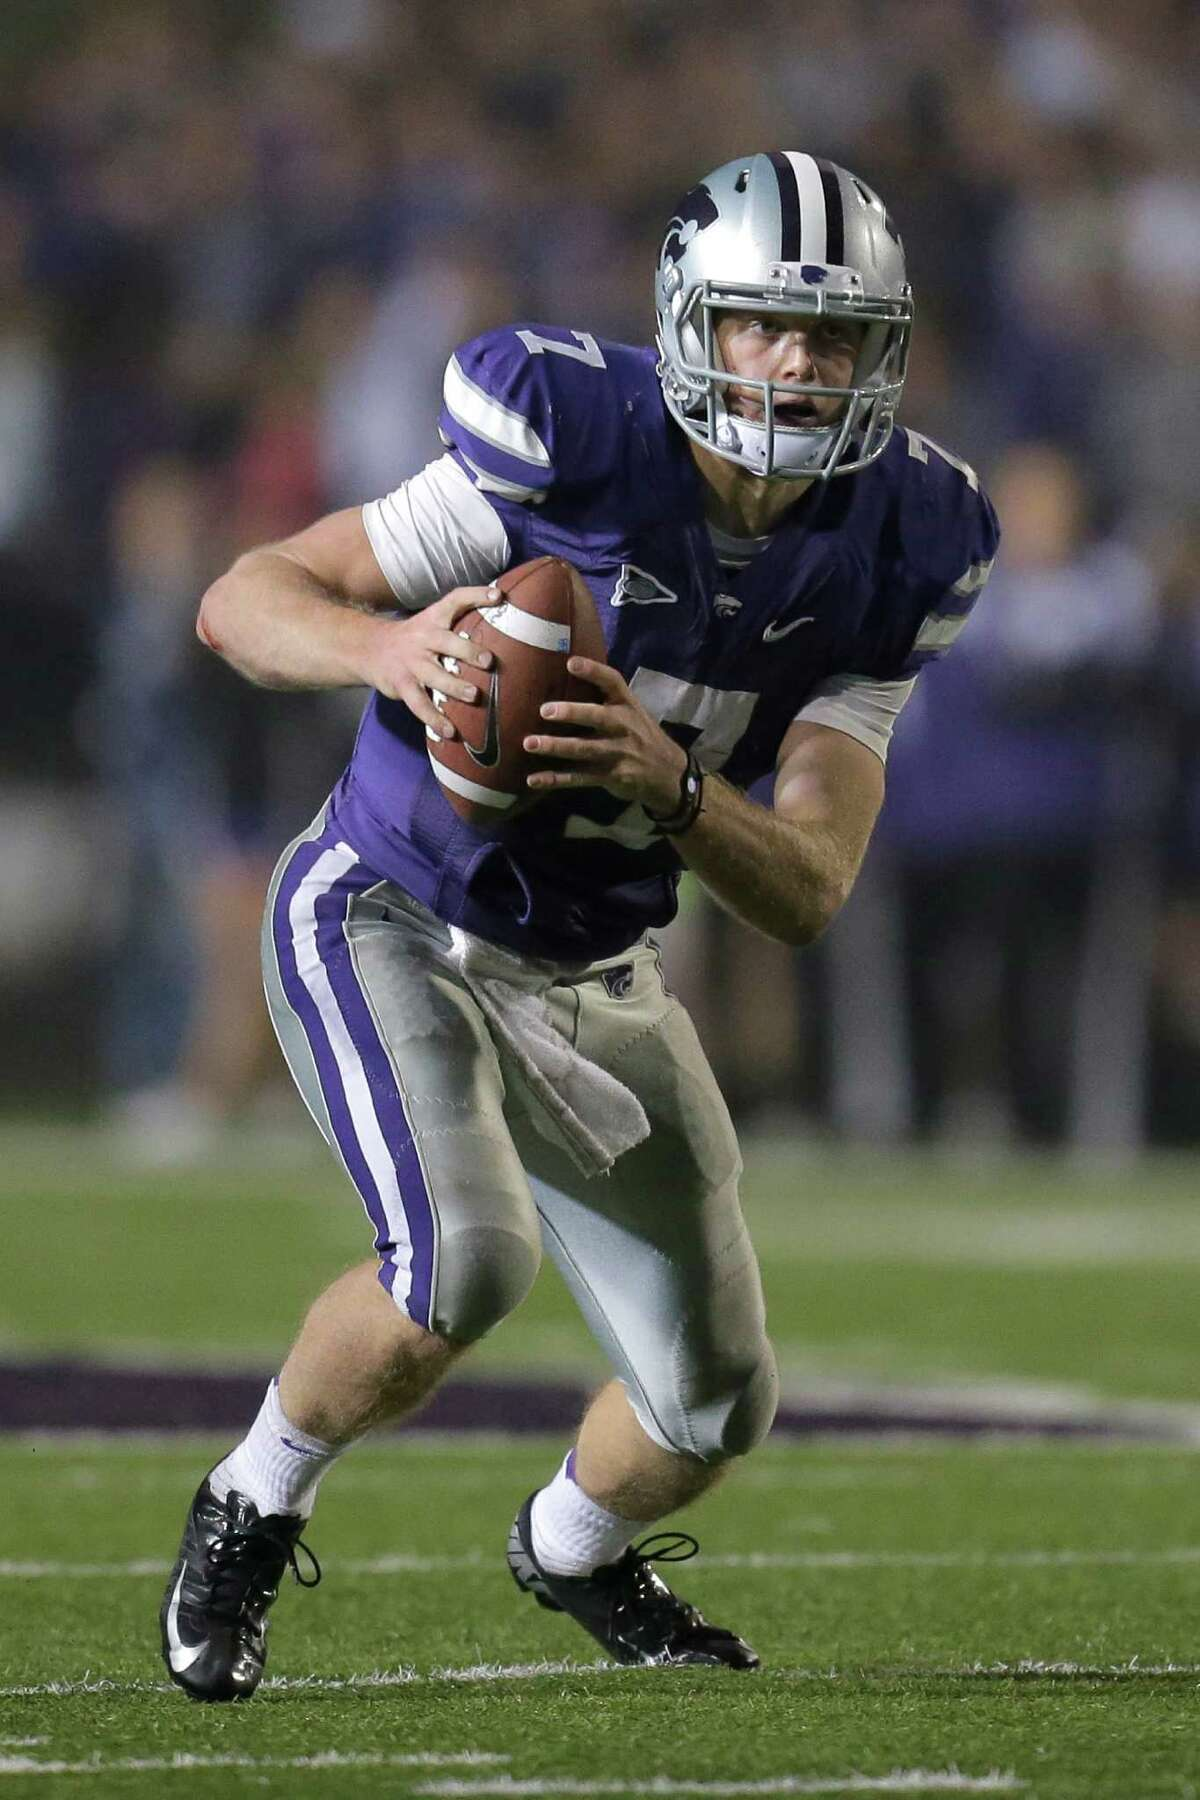 OFFENSIVE PLAYER OF YEAR Collin Klein, Kansas State: The Heisman finalist became the first player from a BCS automatic qualifying school in the modern era to rush for at least 20 touchdowns and pass for 10 touchdowns in multiple seasons. He has accounted for 37 touchdowns to rank 11th nationally and he leads all quarterbacks with 22 rushing touchdowns. His current pass efficiency rating of 156.12 ranks third in school history.